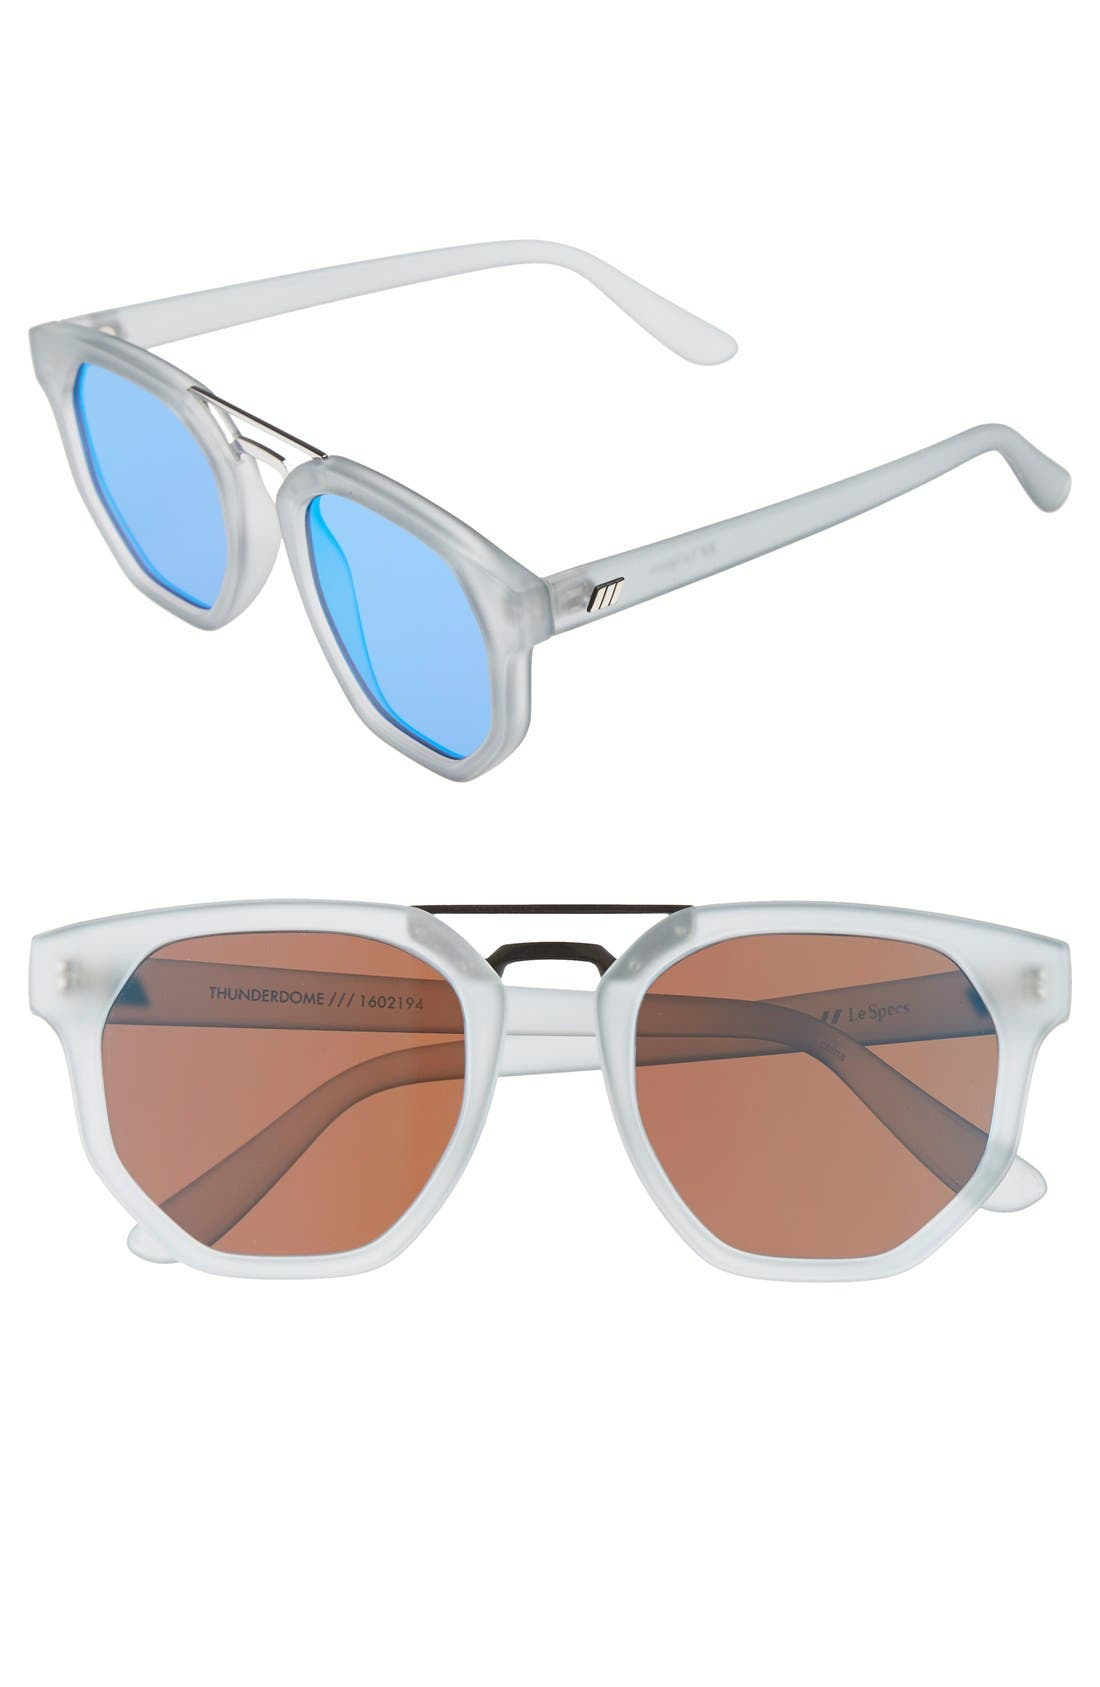 Alternate Image 1 Selected - Le Specs 'Thunderdome' 52mm Sunglasses